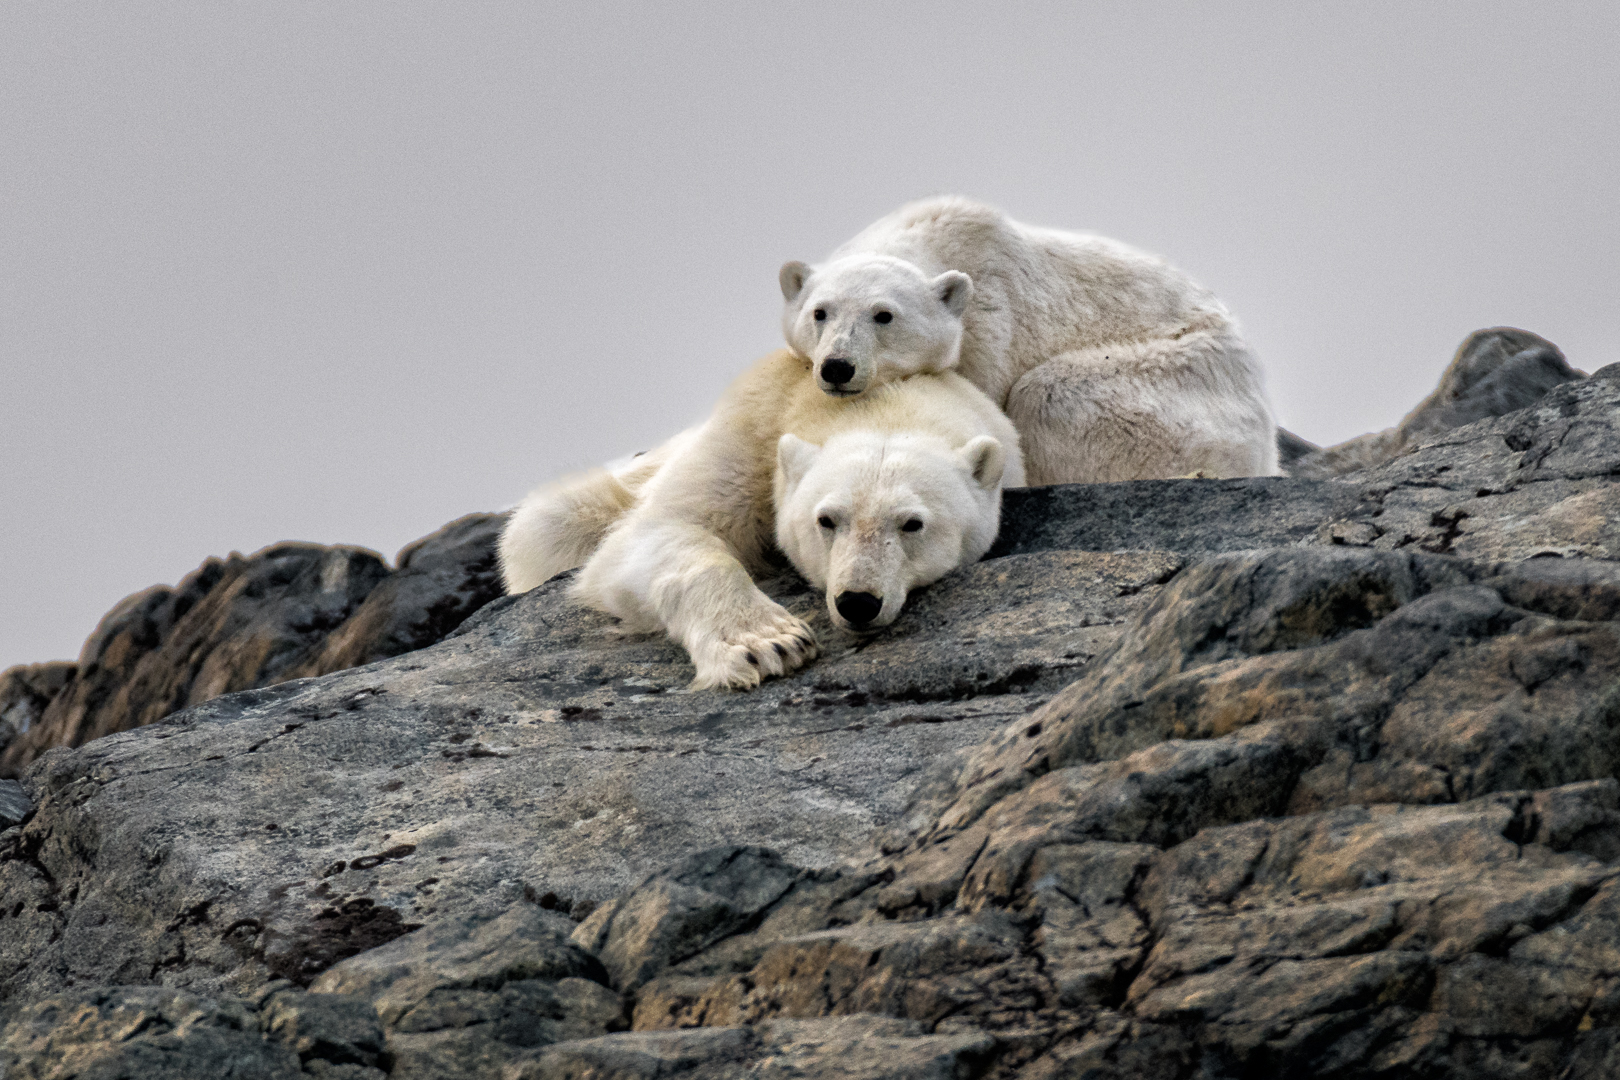 BEARS WAITING FOR ICE_MDS4308.jpg